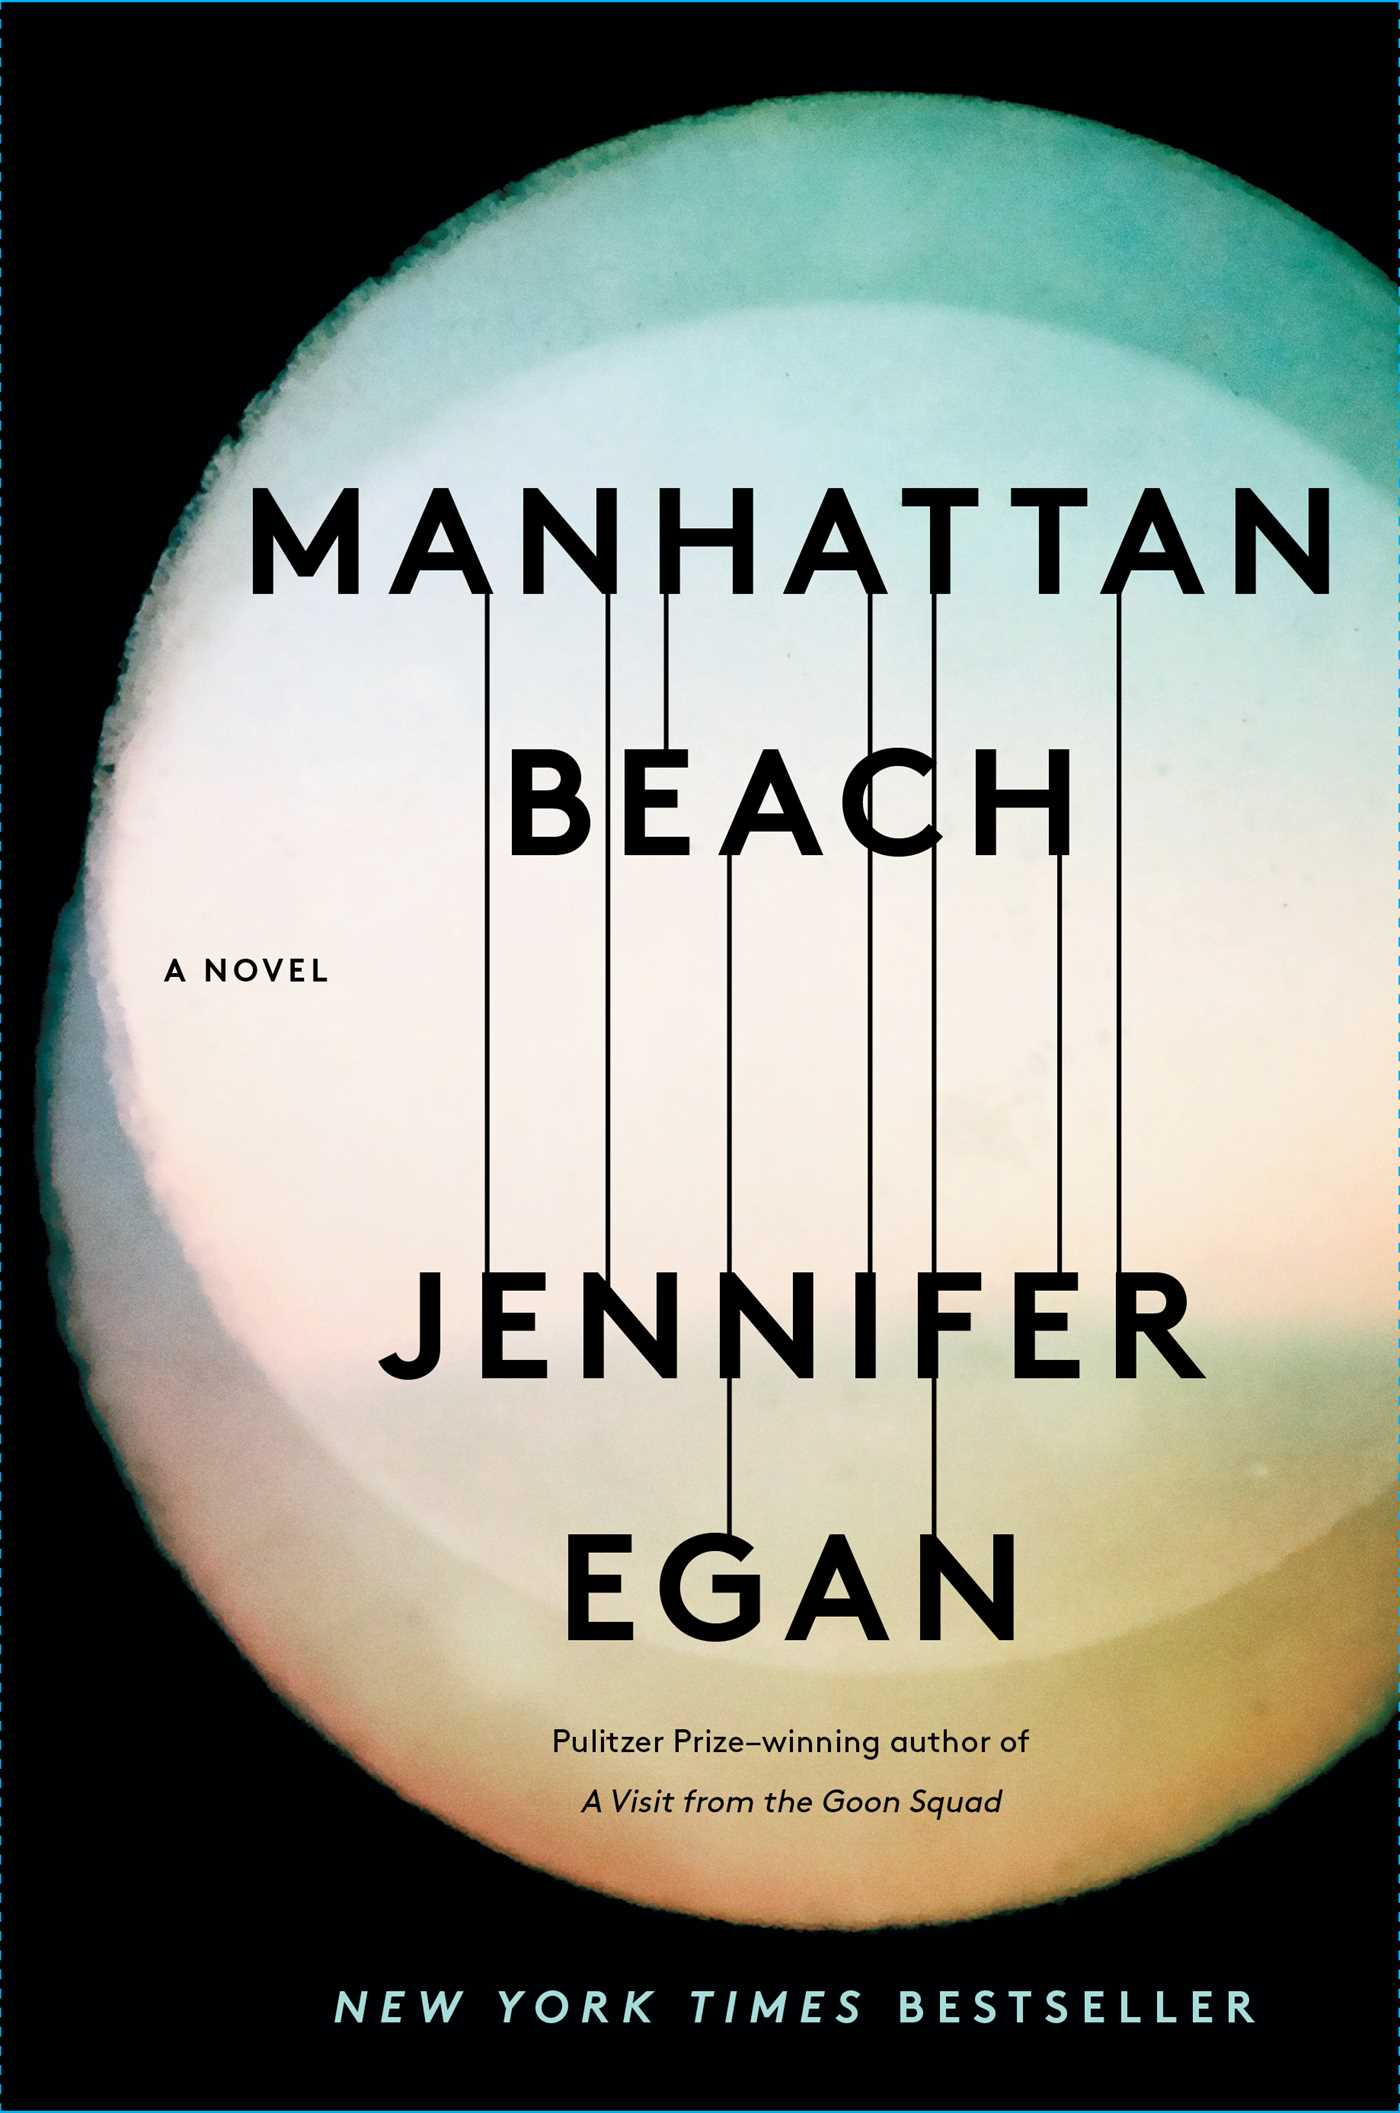 Image result for manhattan beach book